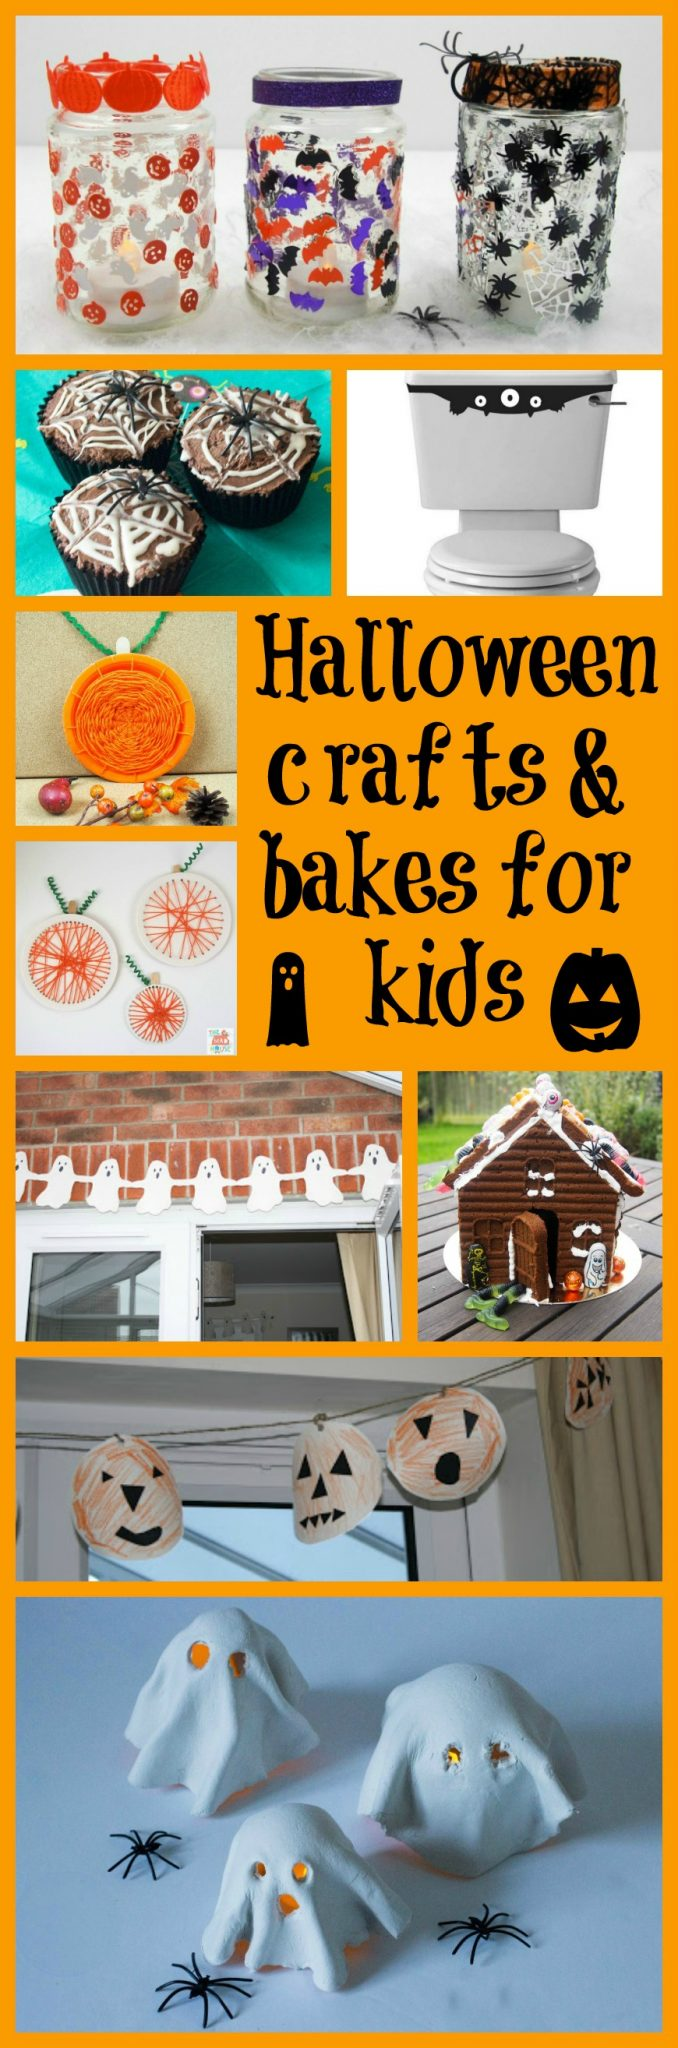 Halloween crafts and bakes for kids